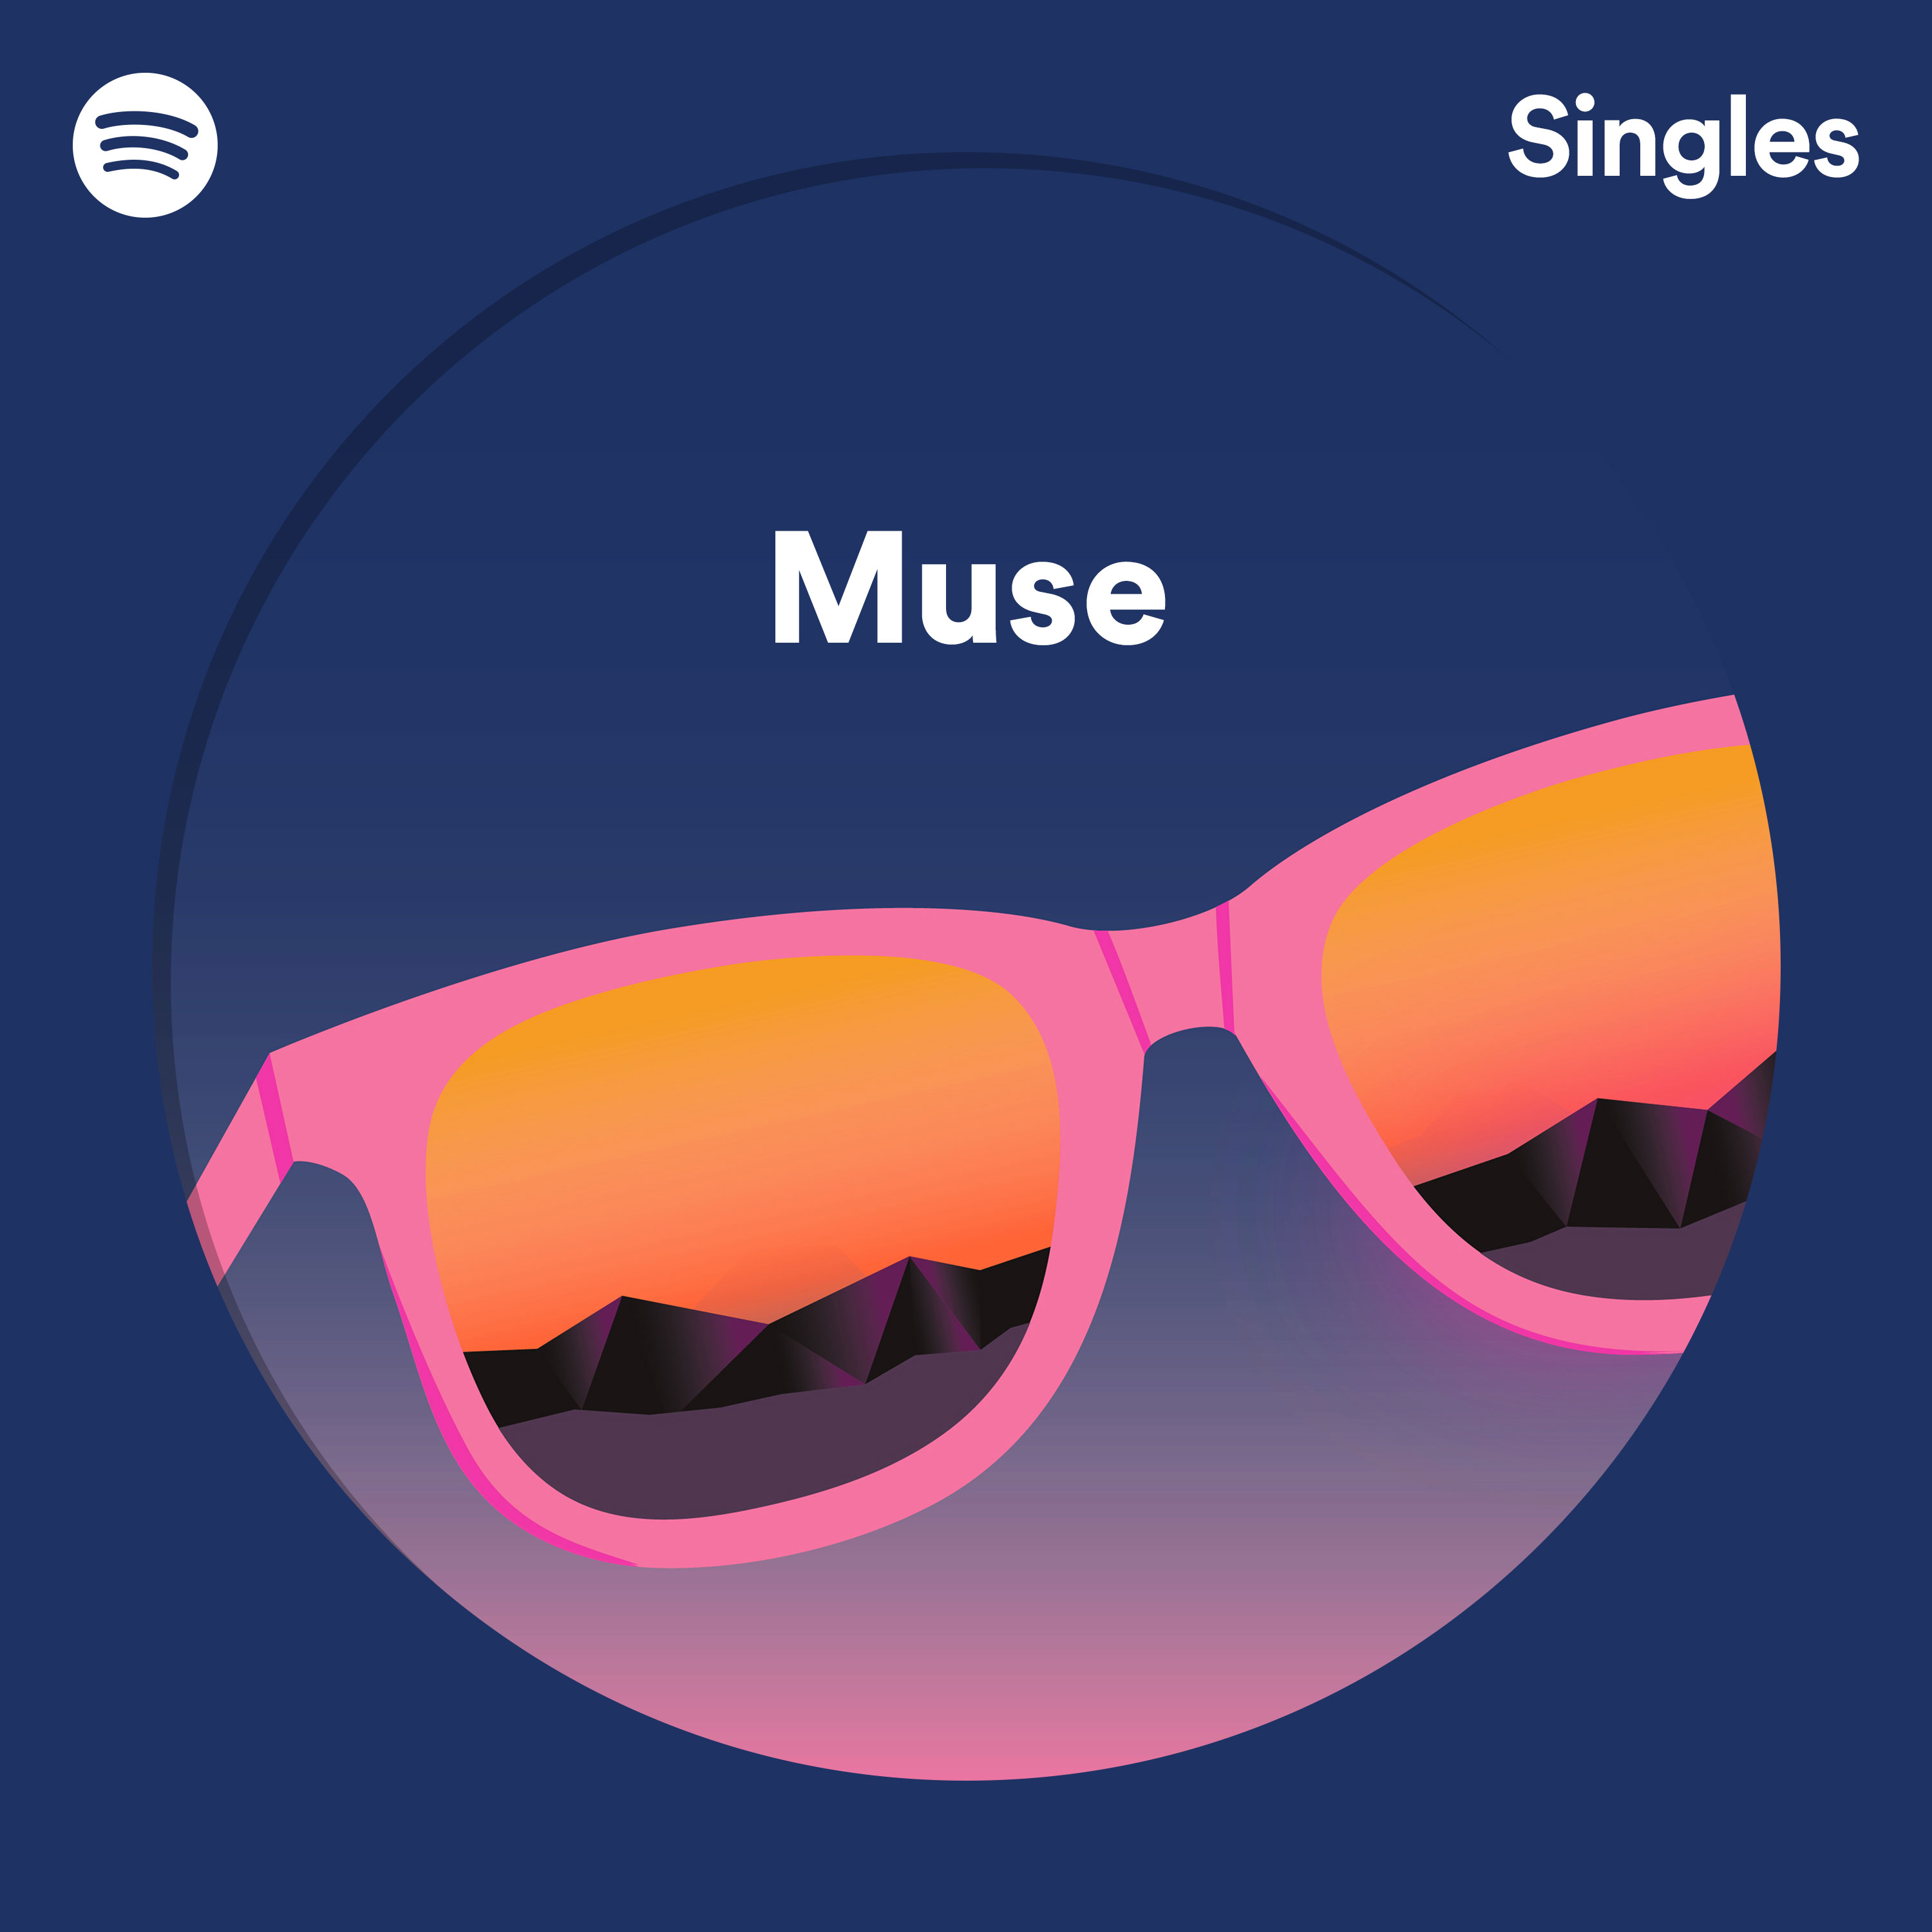 Muse | Spotify Singles Official Website